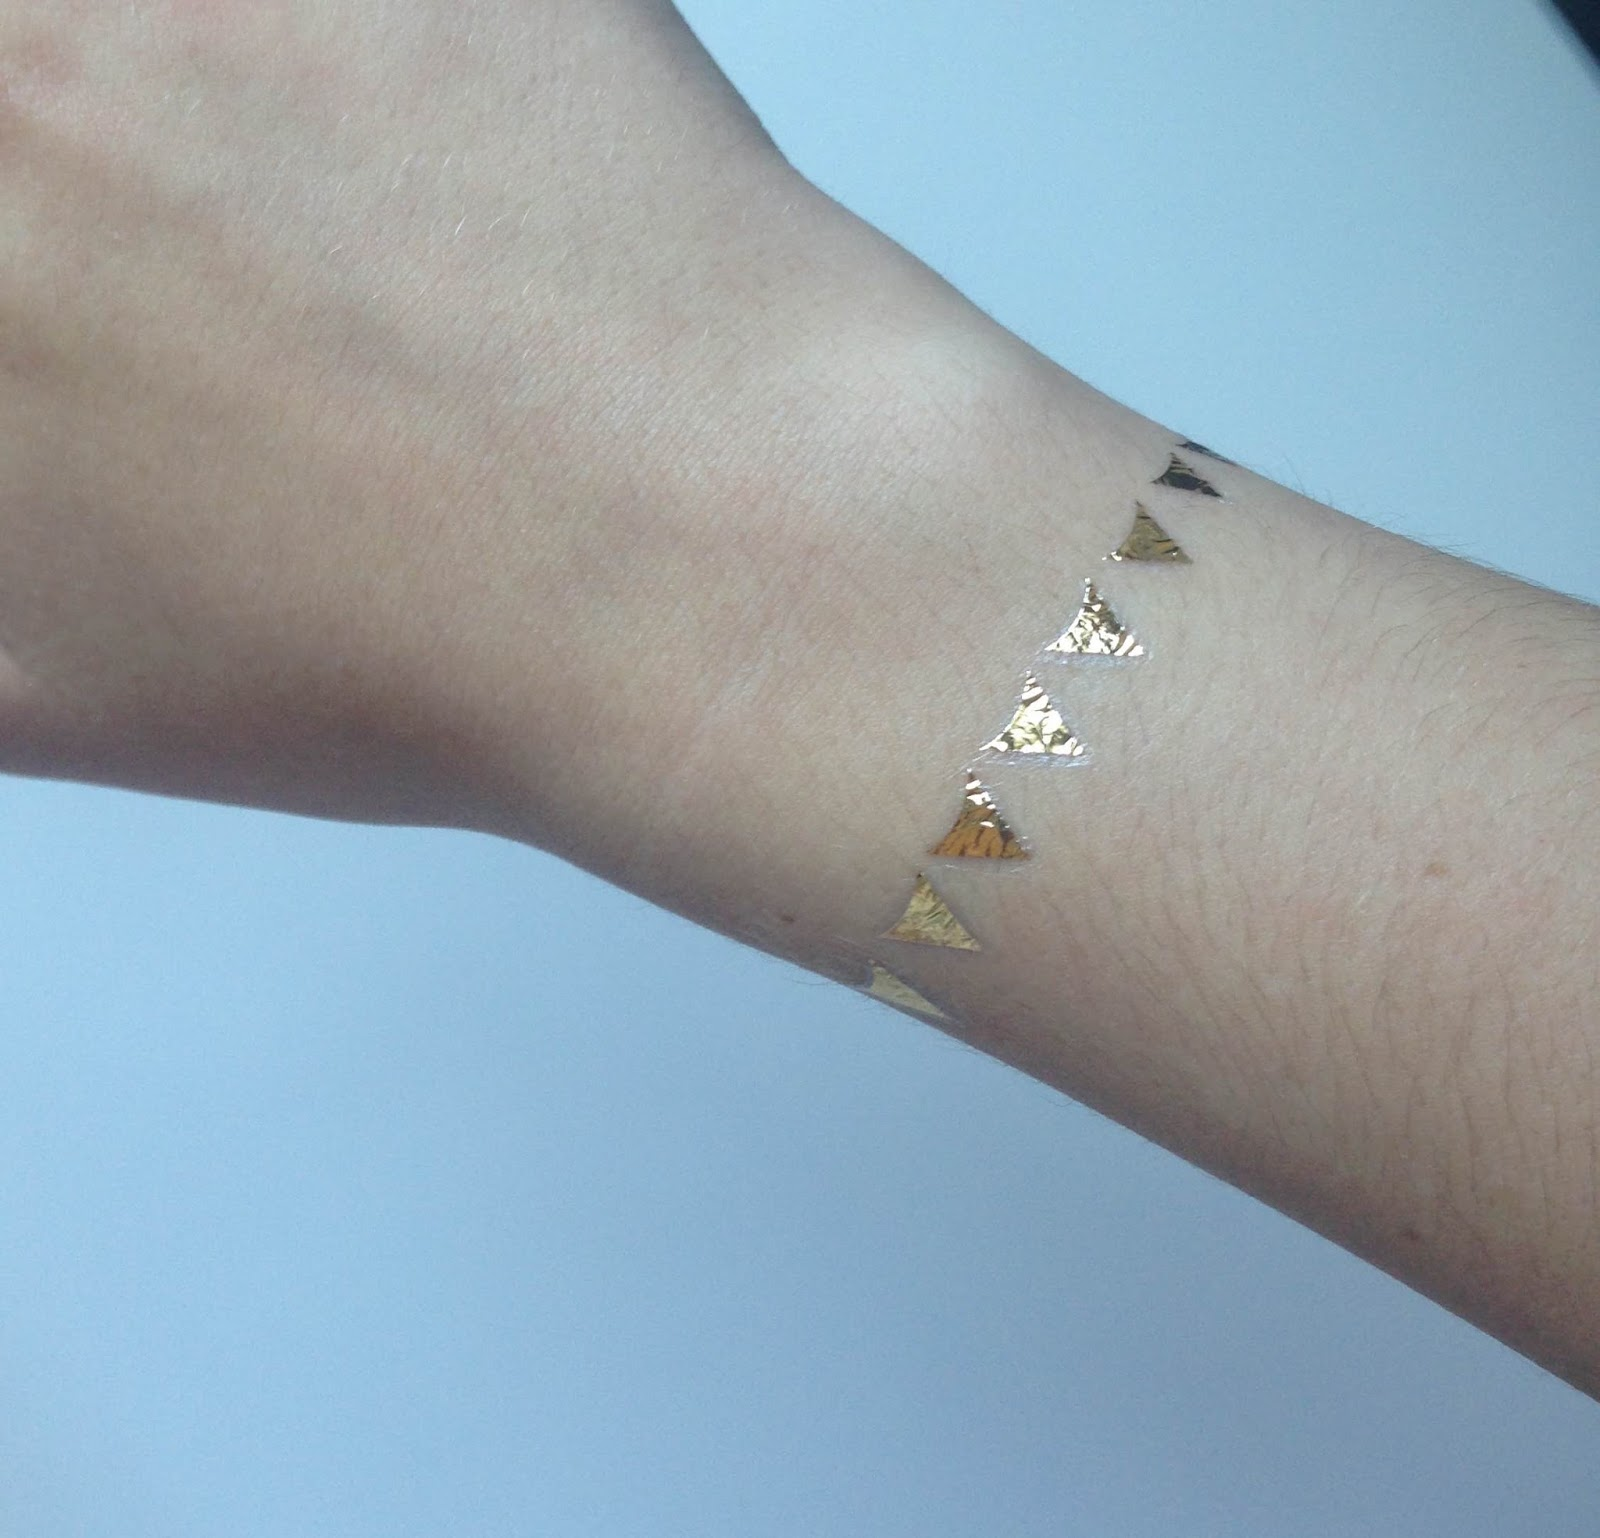 Gold Metallic Jewellery Tattoo Leah Marriott